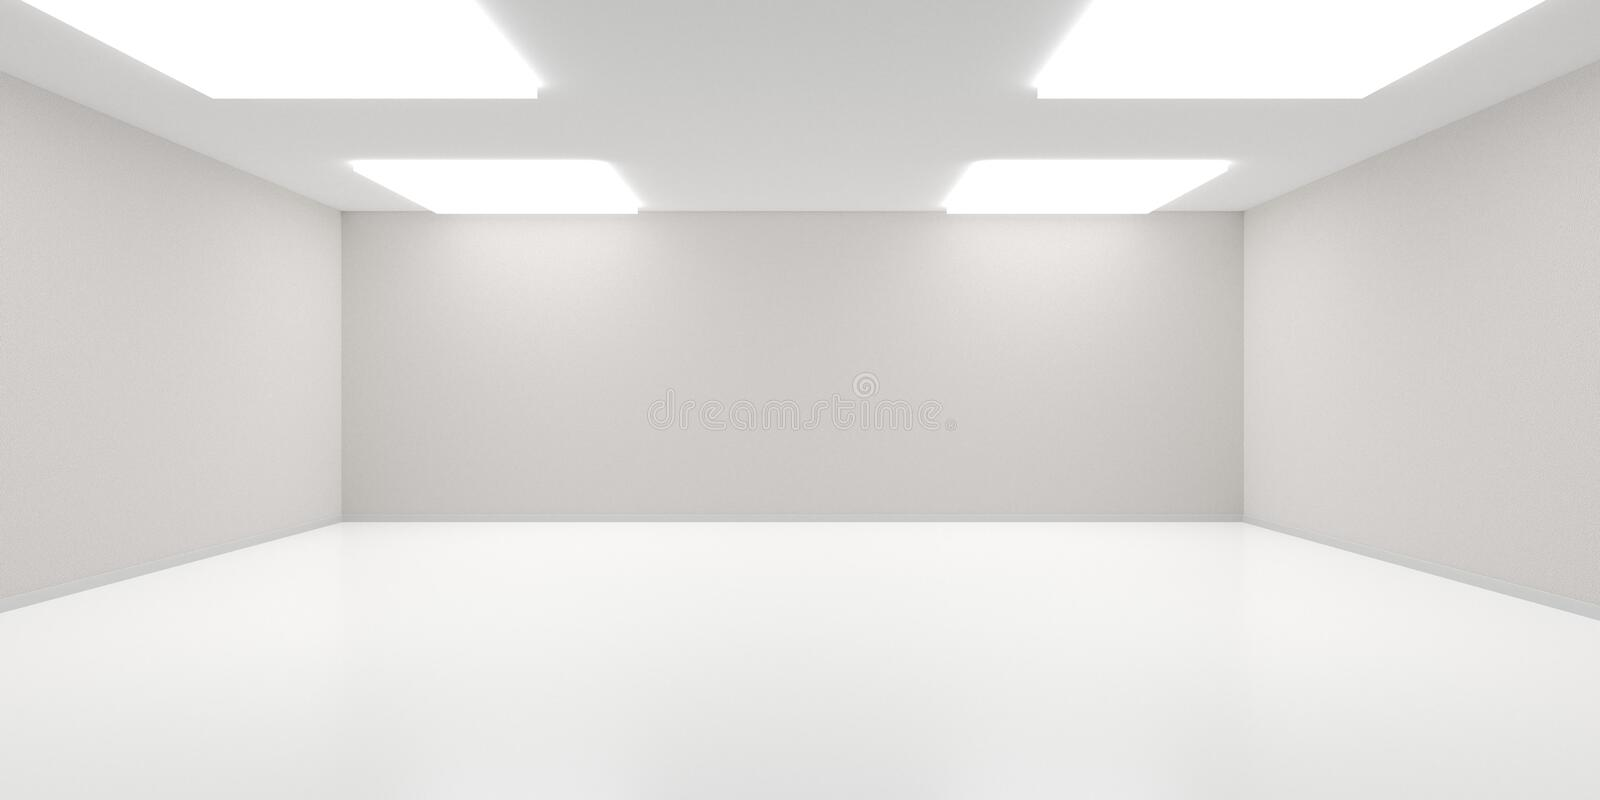 empty white room with lighting from the